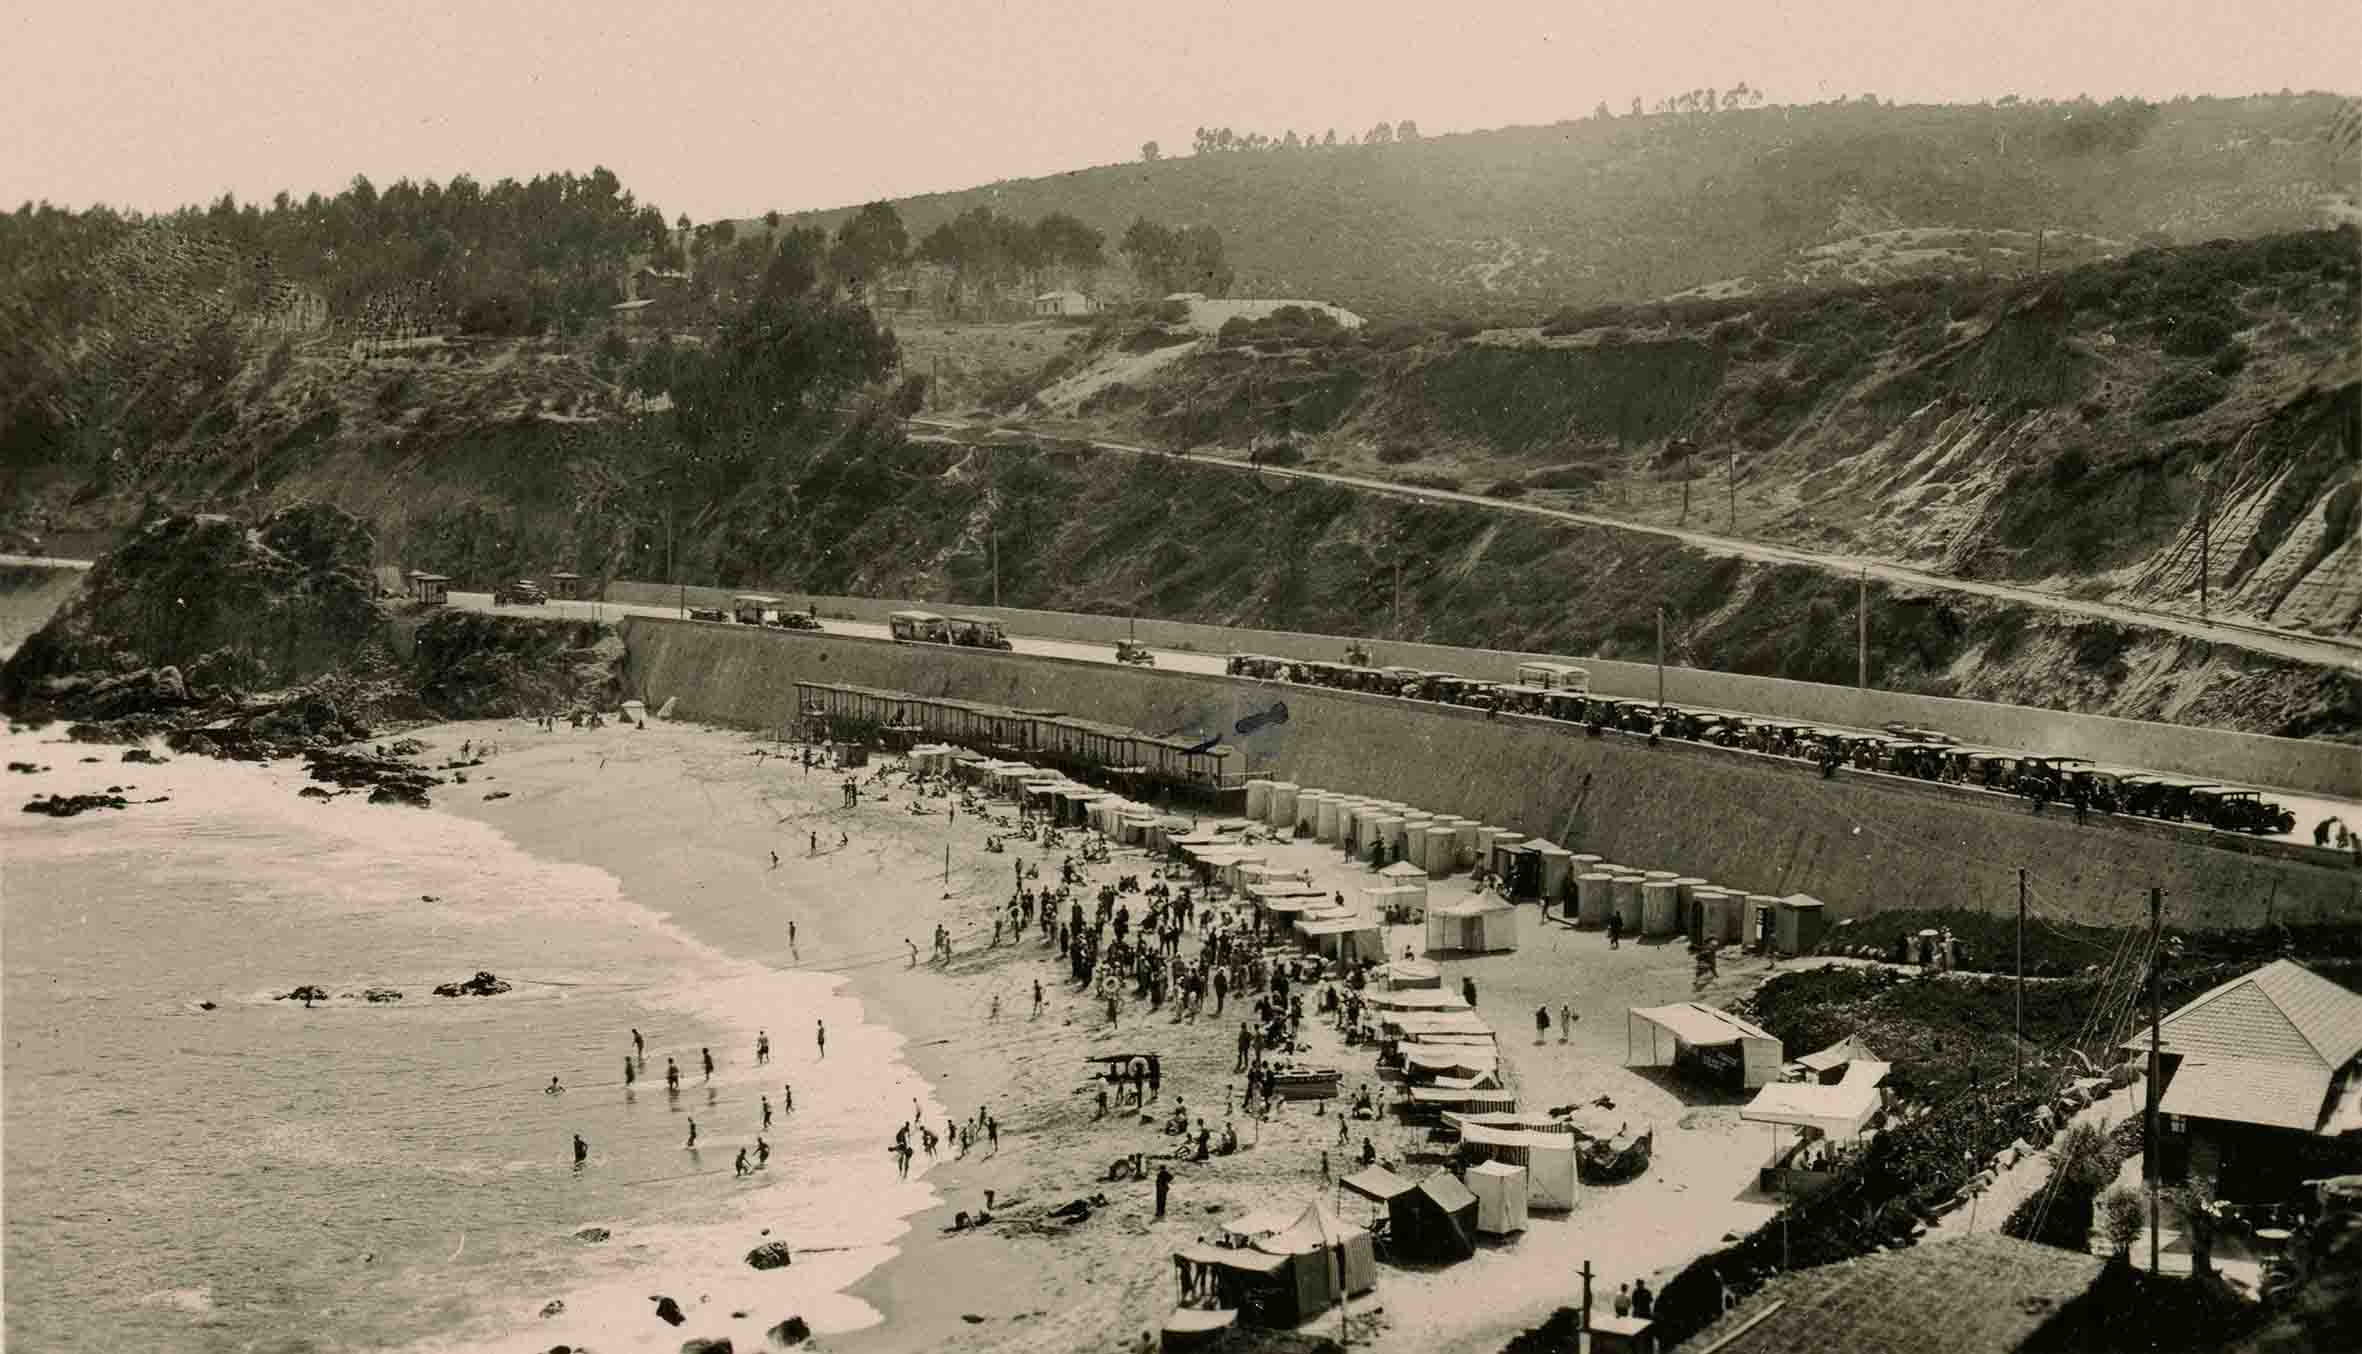 Enterreno - Fotos históricas de chile - fotos antiguas de Chile - Las Salinas de Viña del Mar ca. 1925